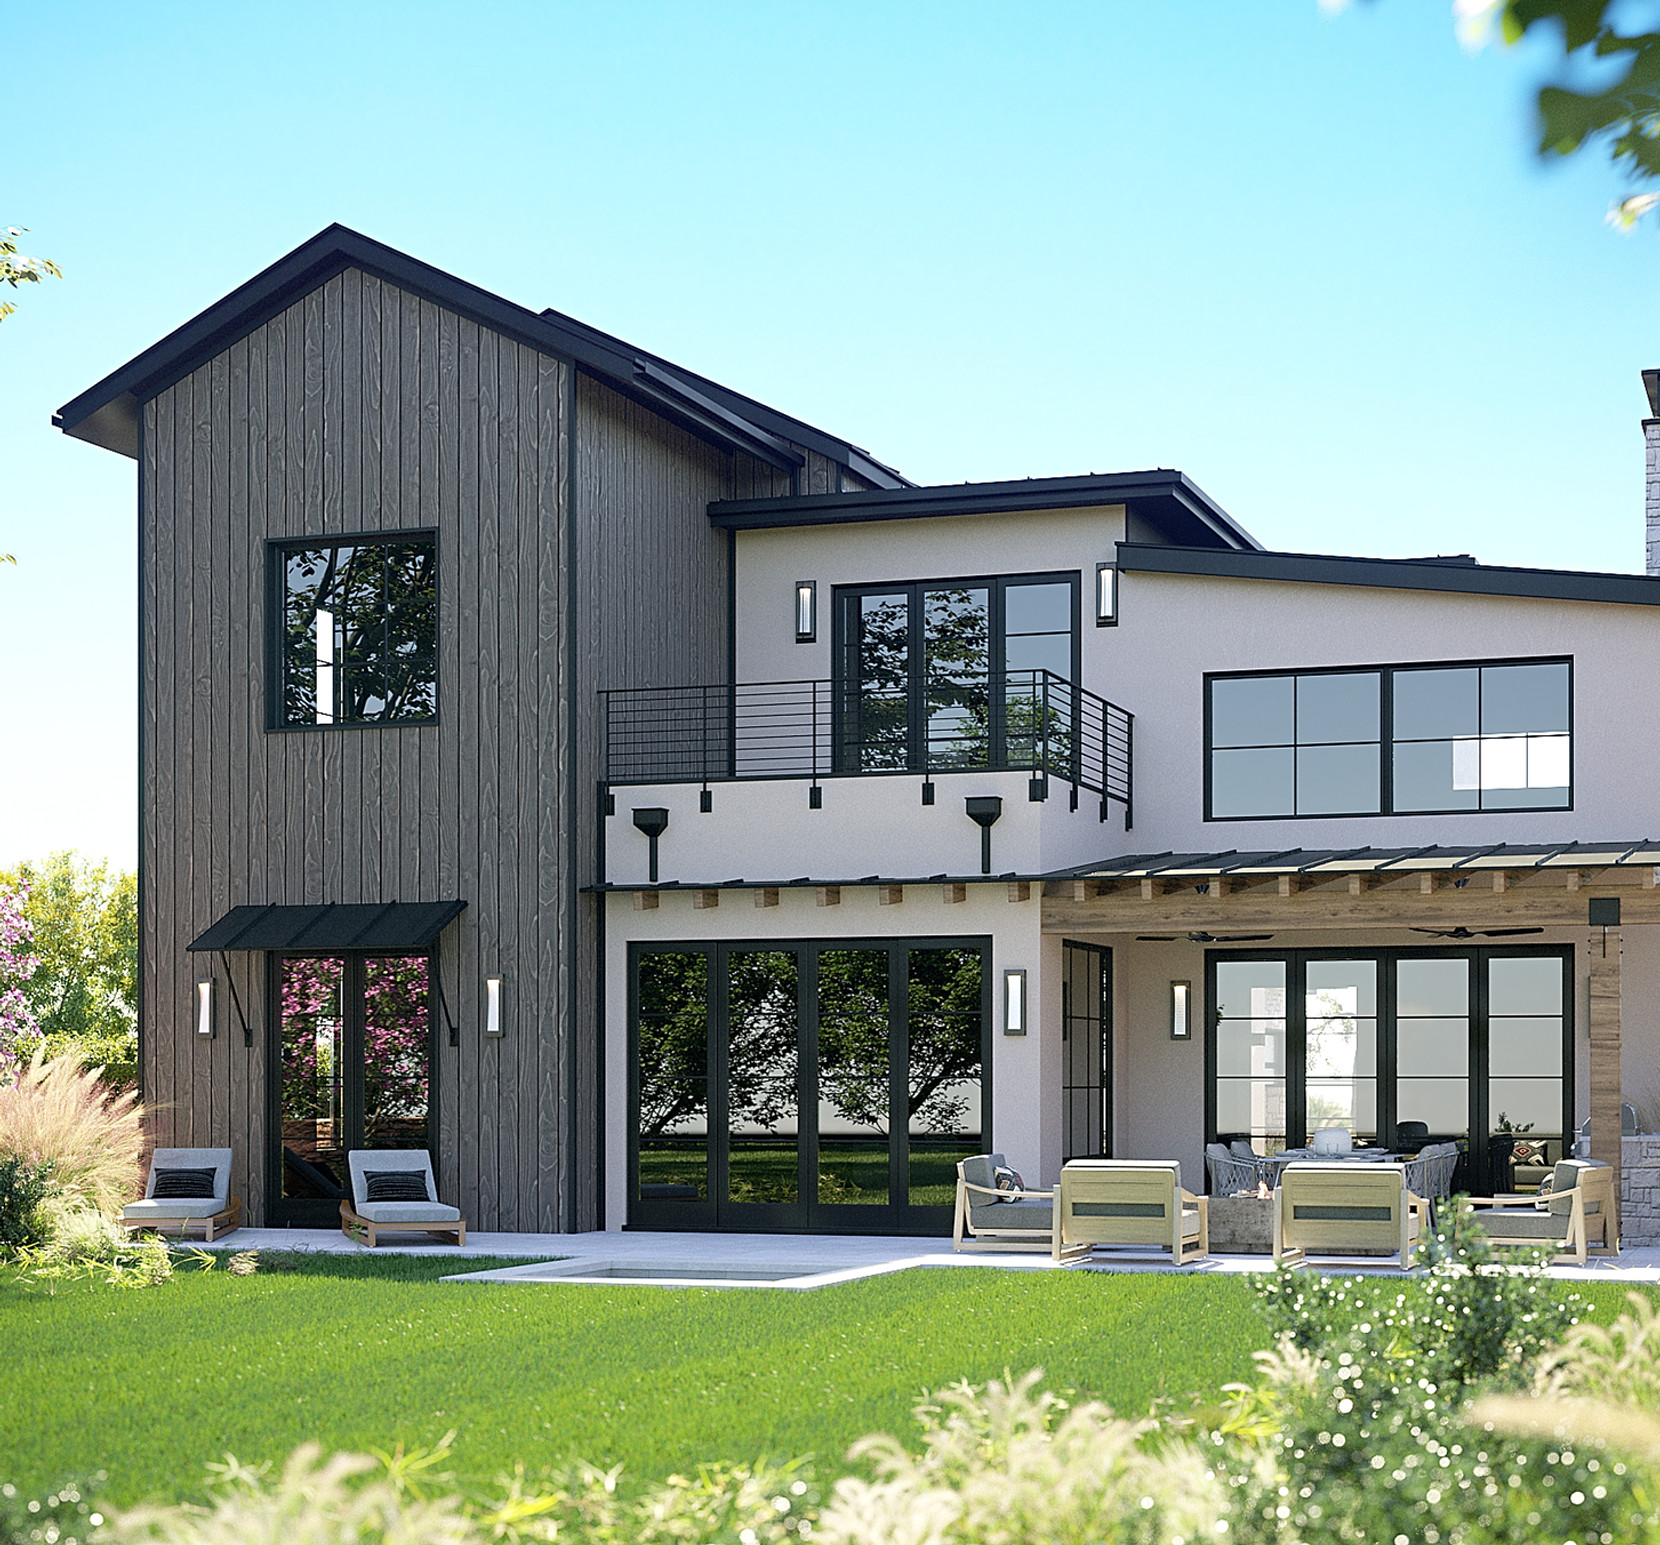 RENDER OF LUXURY RANCH HOUSE